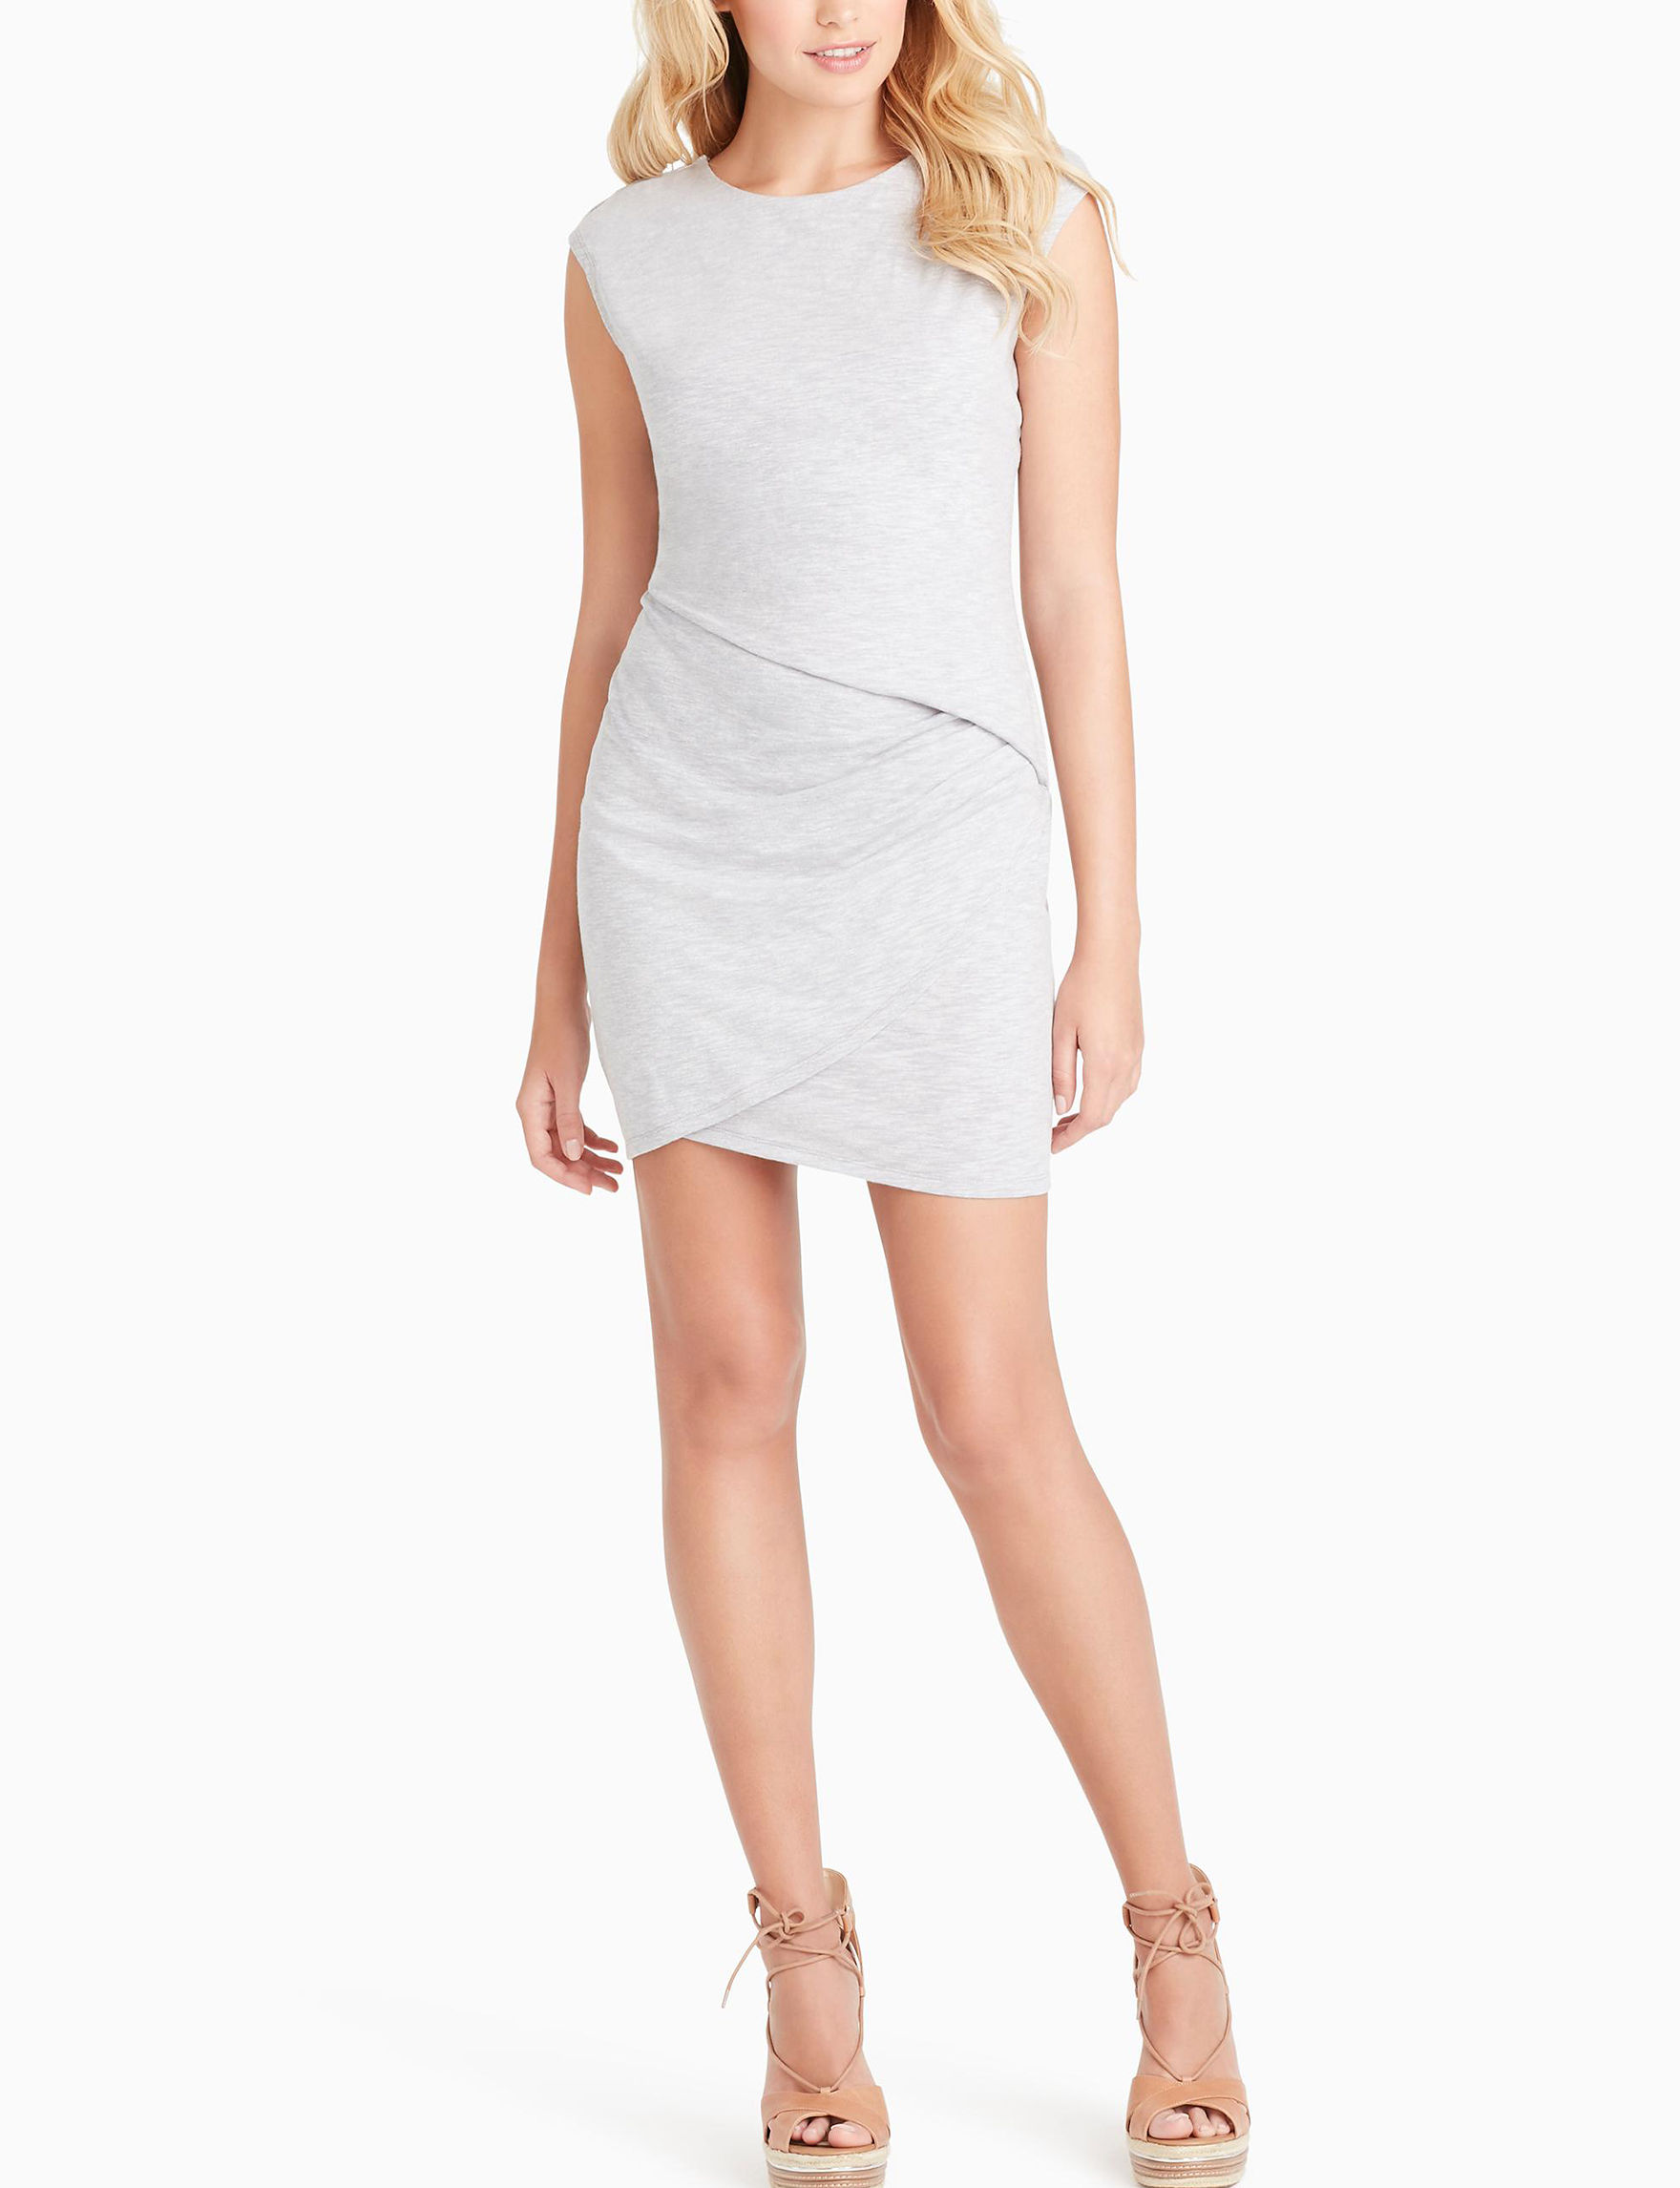 Jessica Simpson Grey Heather Everyday & Casual Bodycon Dresses